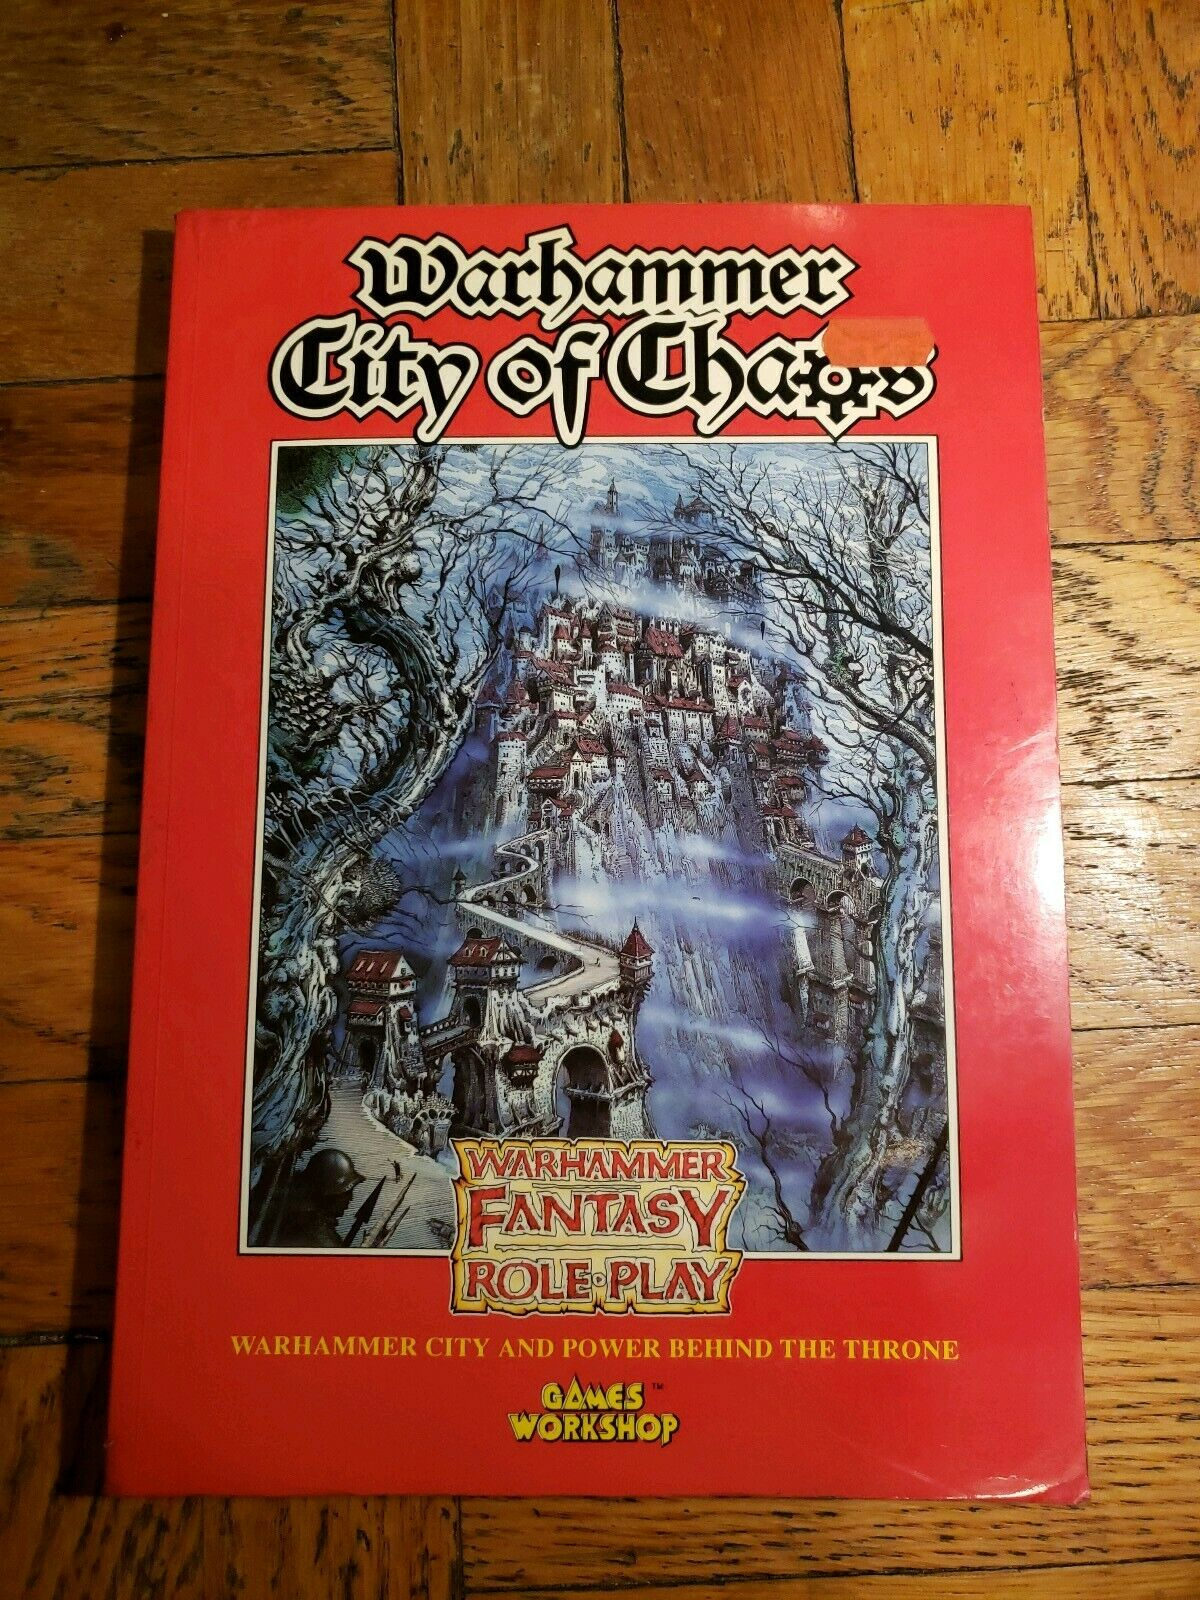 Games Workshop Warhammer City of Chaos Fantasy Roleplay City & Power Behind